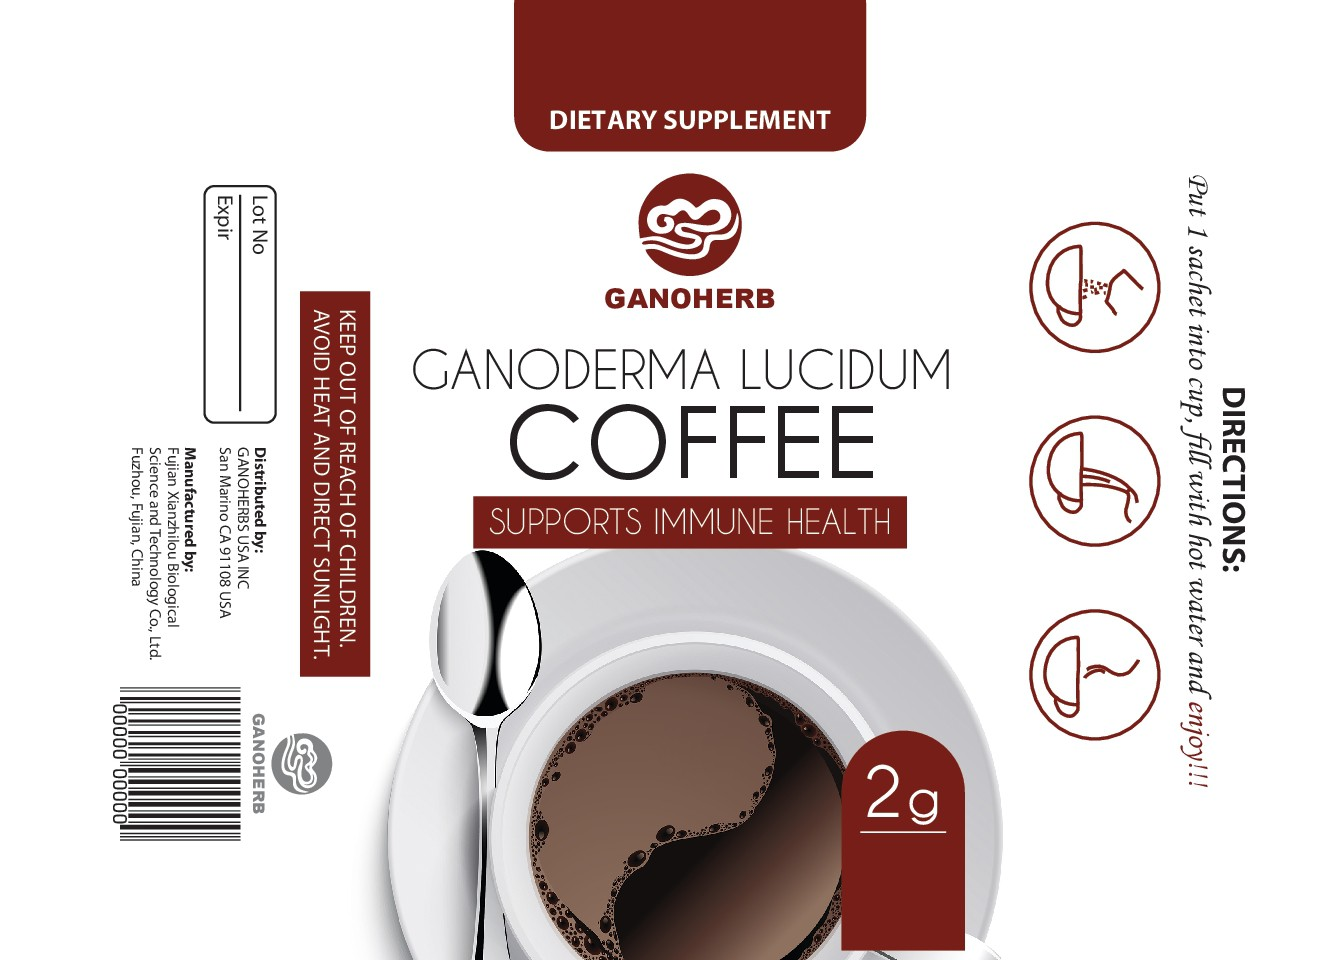 Create an exciting new packaging for a brand new coffee with amazing health benefits!!!